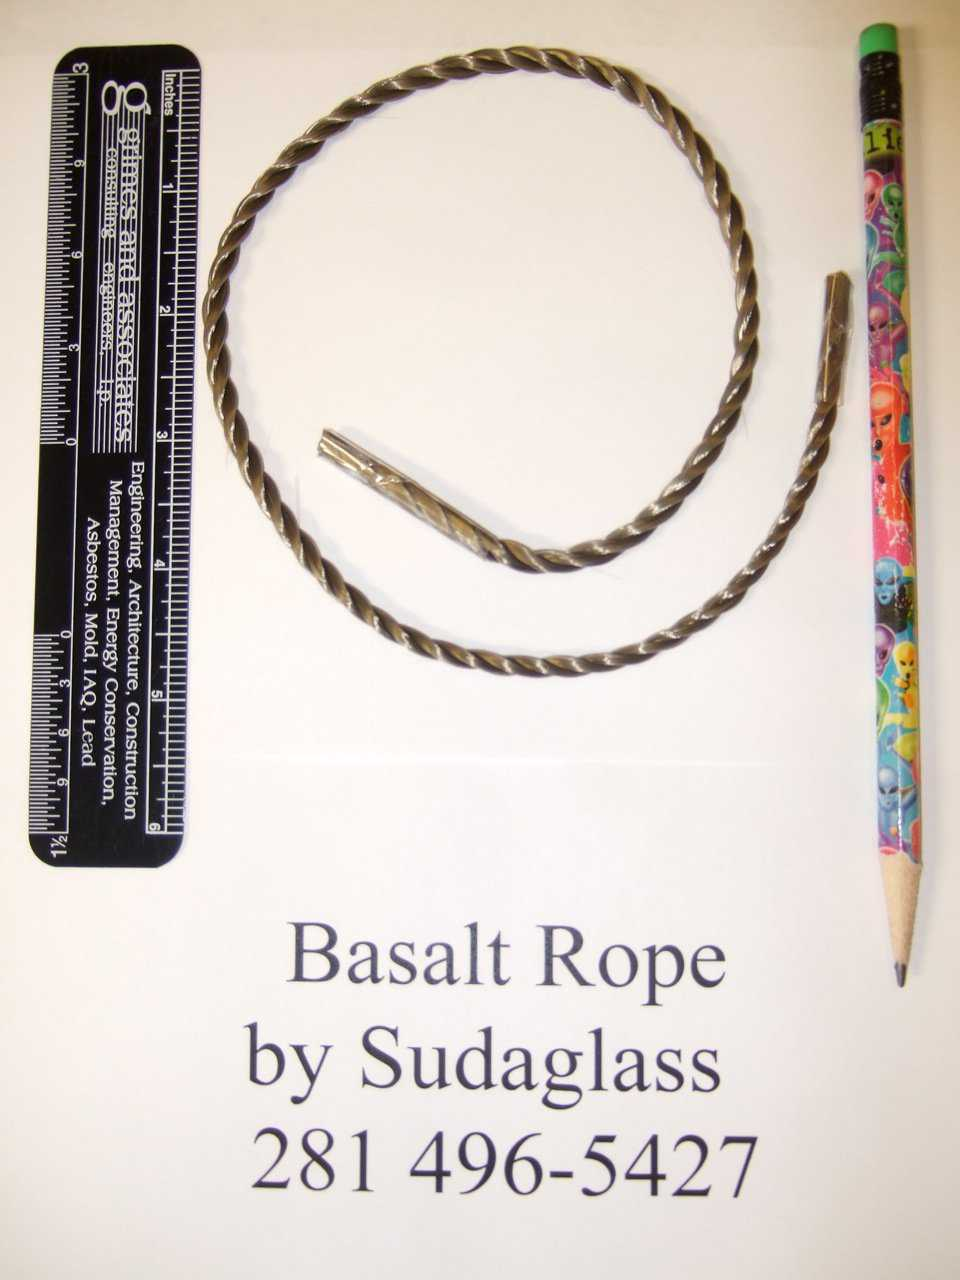 Basalt Rope   After building a few EcoShell Domes with the Basalt Roving we have realized we needed more.  So working with Sudaglass we have come up with this Basalt Rope. It is easier to handle and is just right for the EcoShell Domes. The rope is equal to 3/4 of a 4 mm bar. It comes in 10 kilo (22 lbs) rolls. Two rolls will build a 6 meter (20 ft) diameter EcoShell. This is a great home or storage. Basalt Rope for use in the construction of EcoShell I domes. It is easy to handle and to ship and far easier to use than the roving.